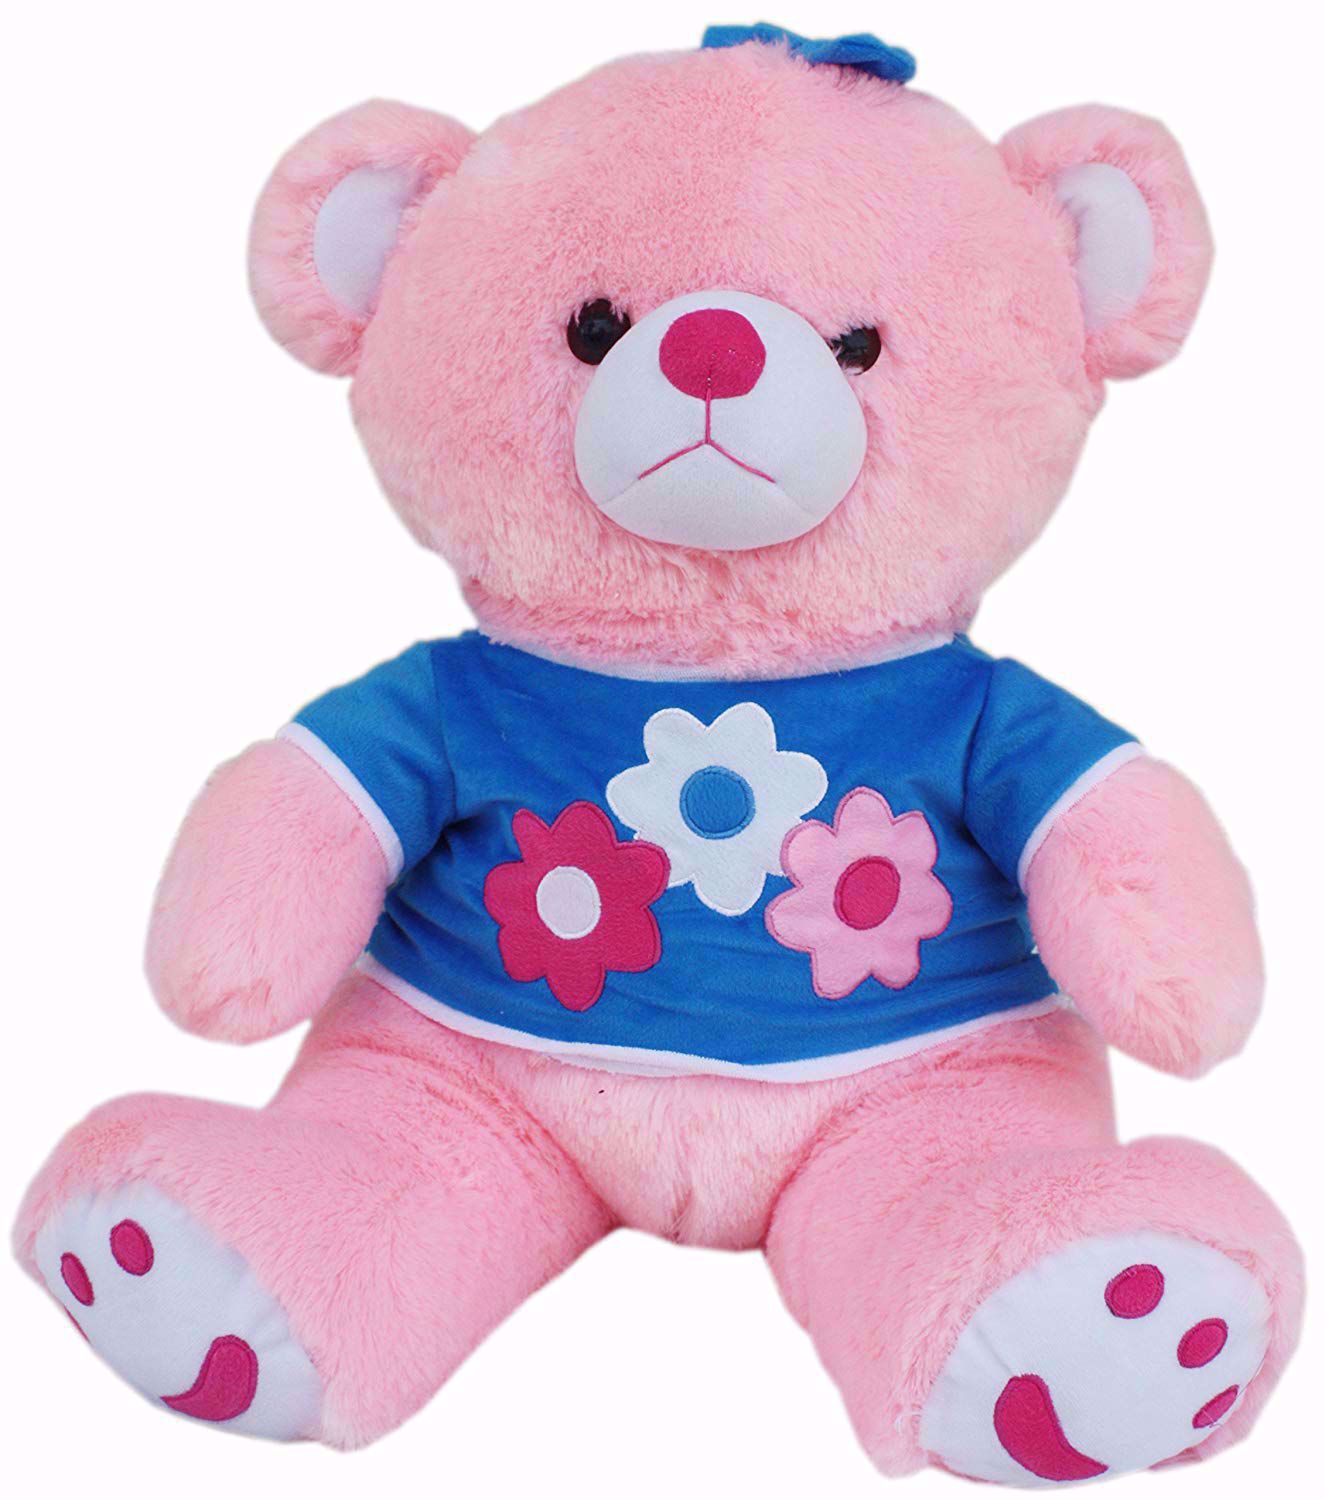 Super Soft Pink Teddy With Blue Shirt Teddy Bear 45 cm,teddy bear t shirts onlinde